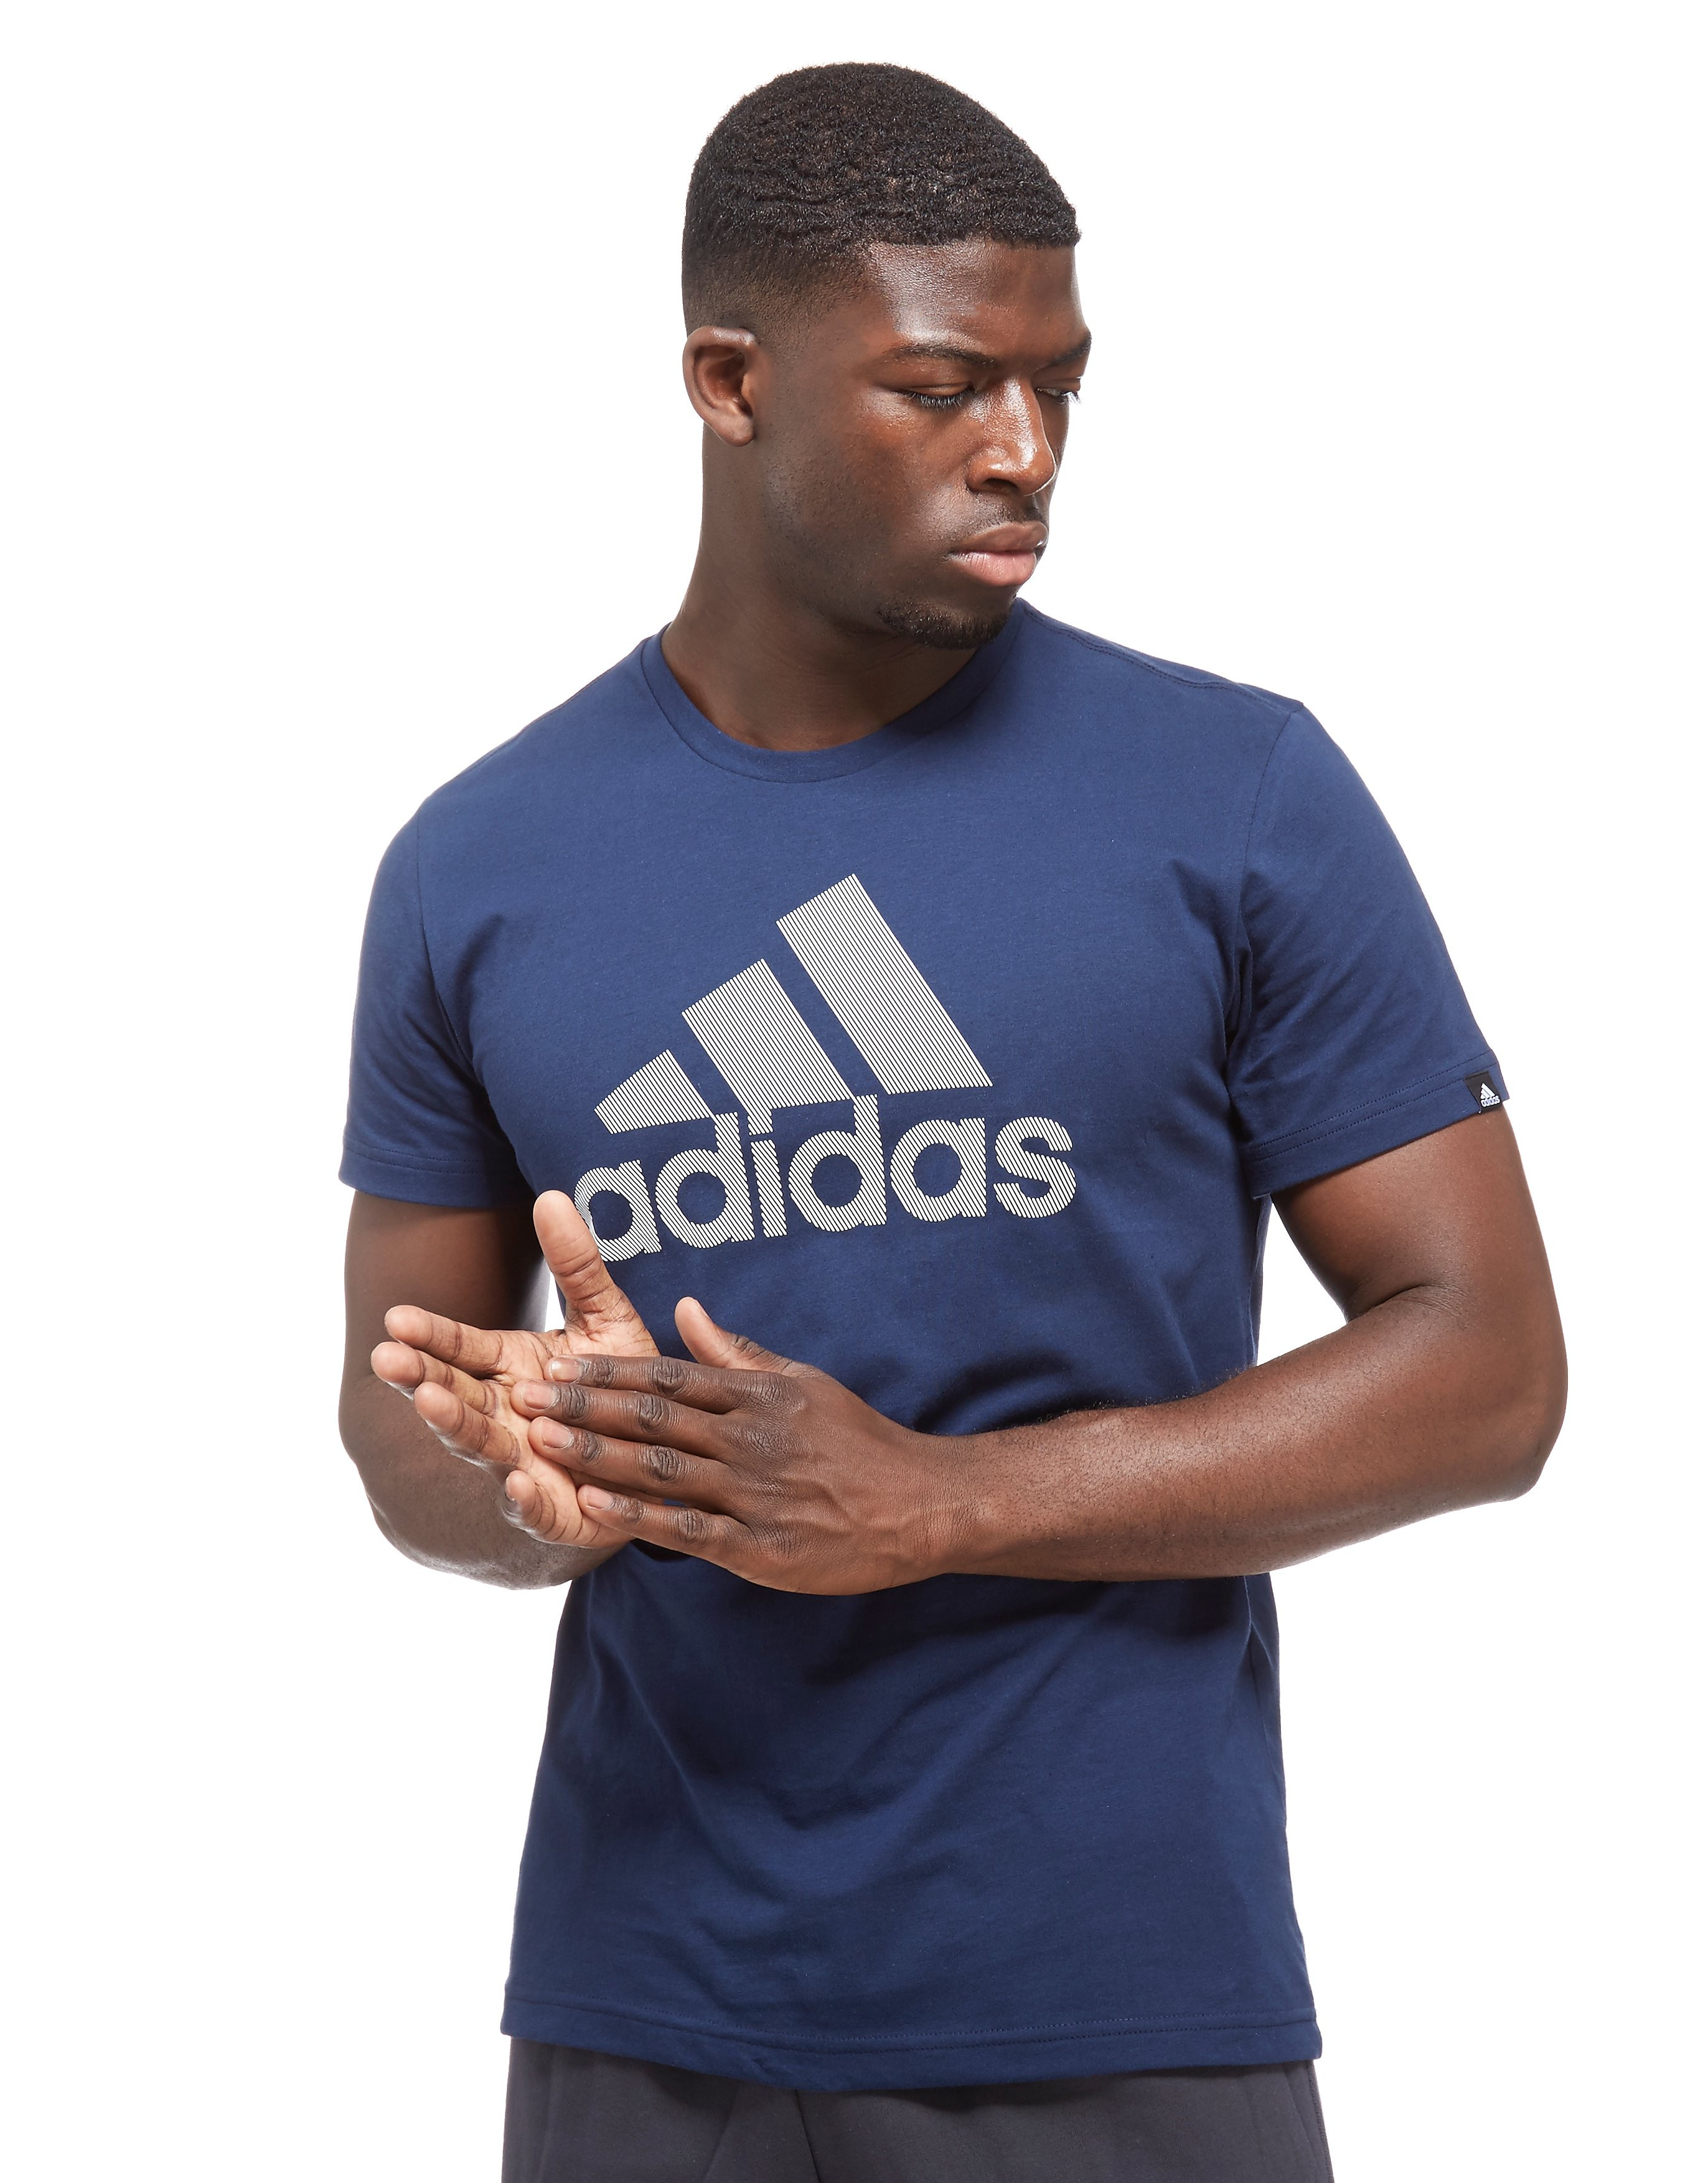 adidas T-shirt Raised Perforated Homme